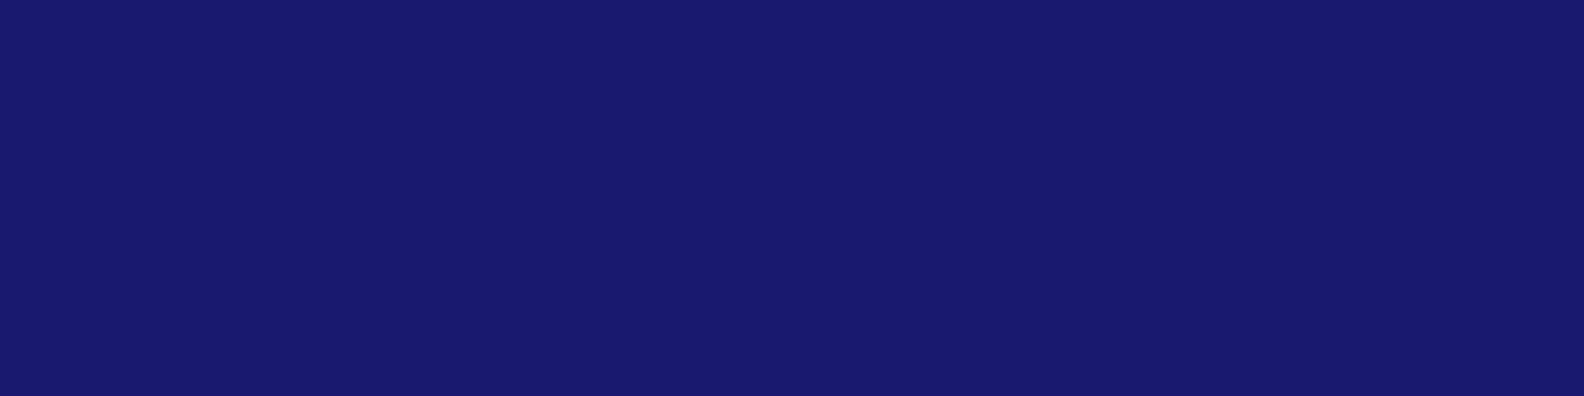 1584x396 Midnight Blue Solid Color Background